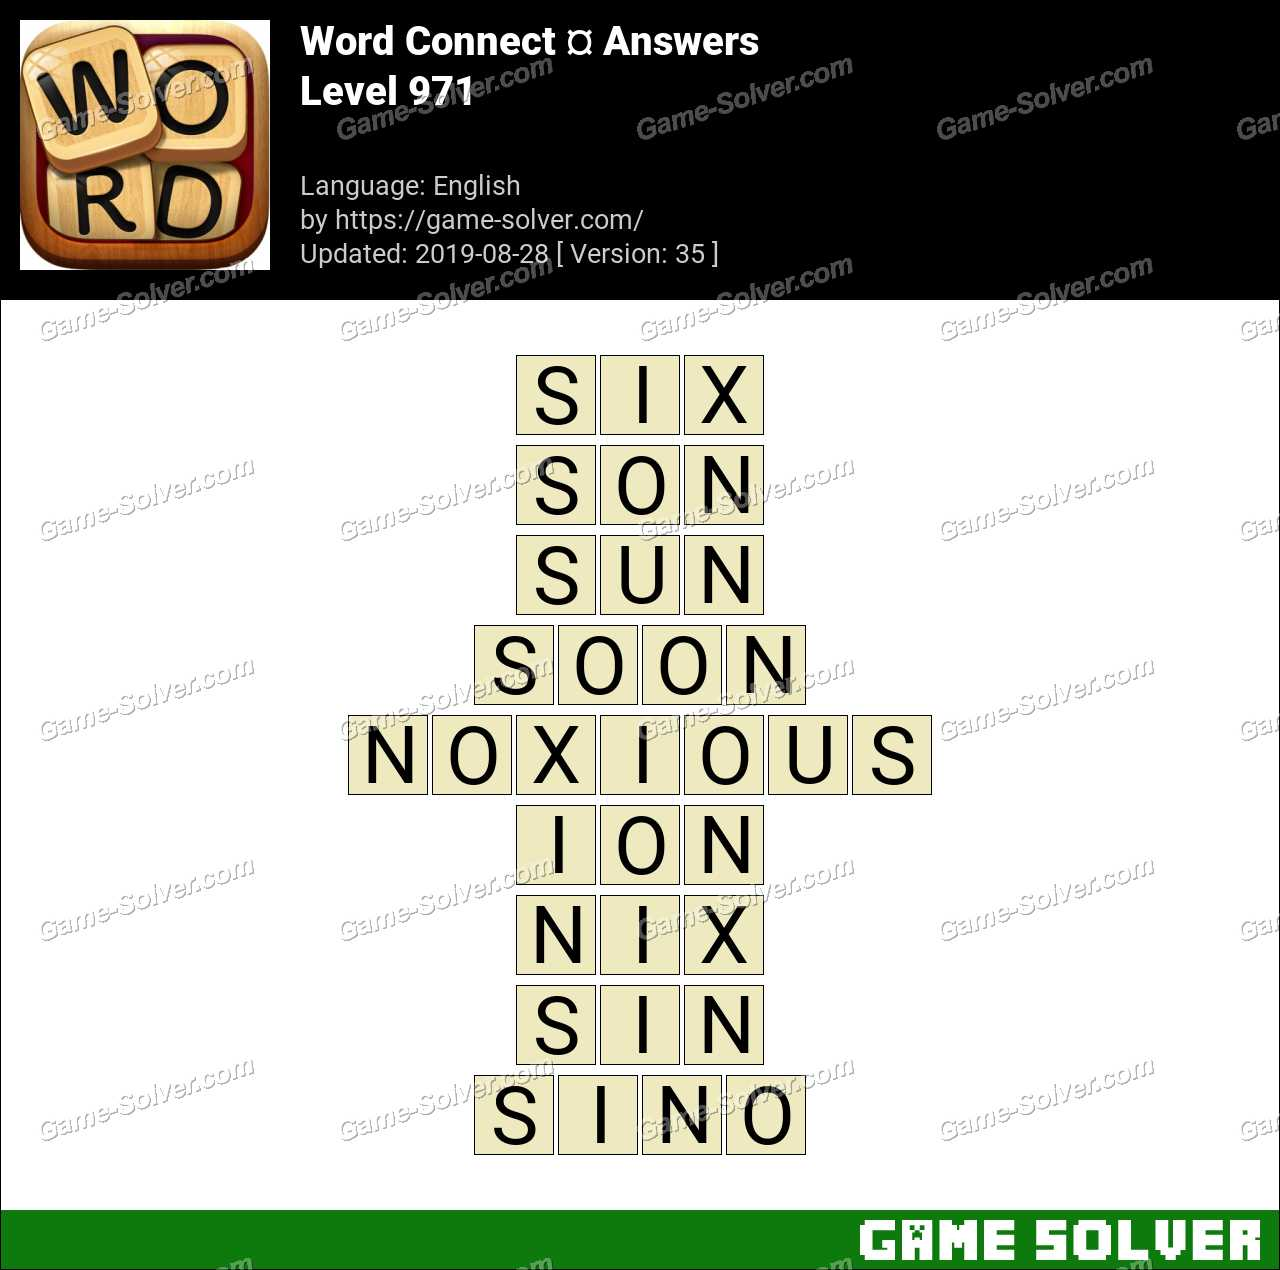 Word Connect Level 971 Answers